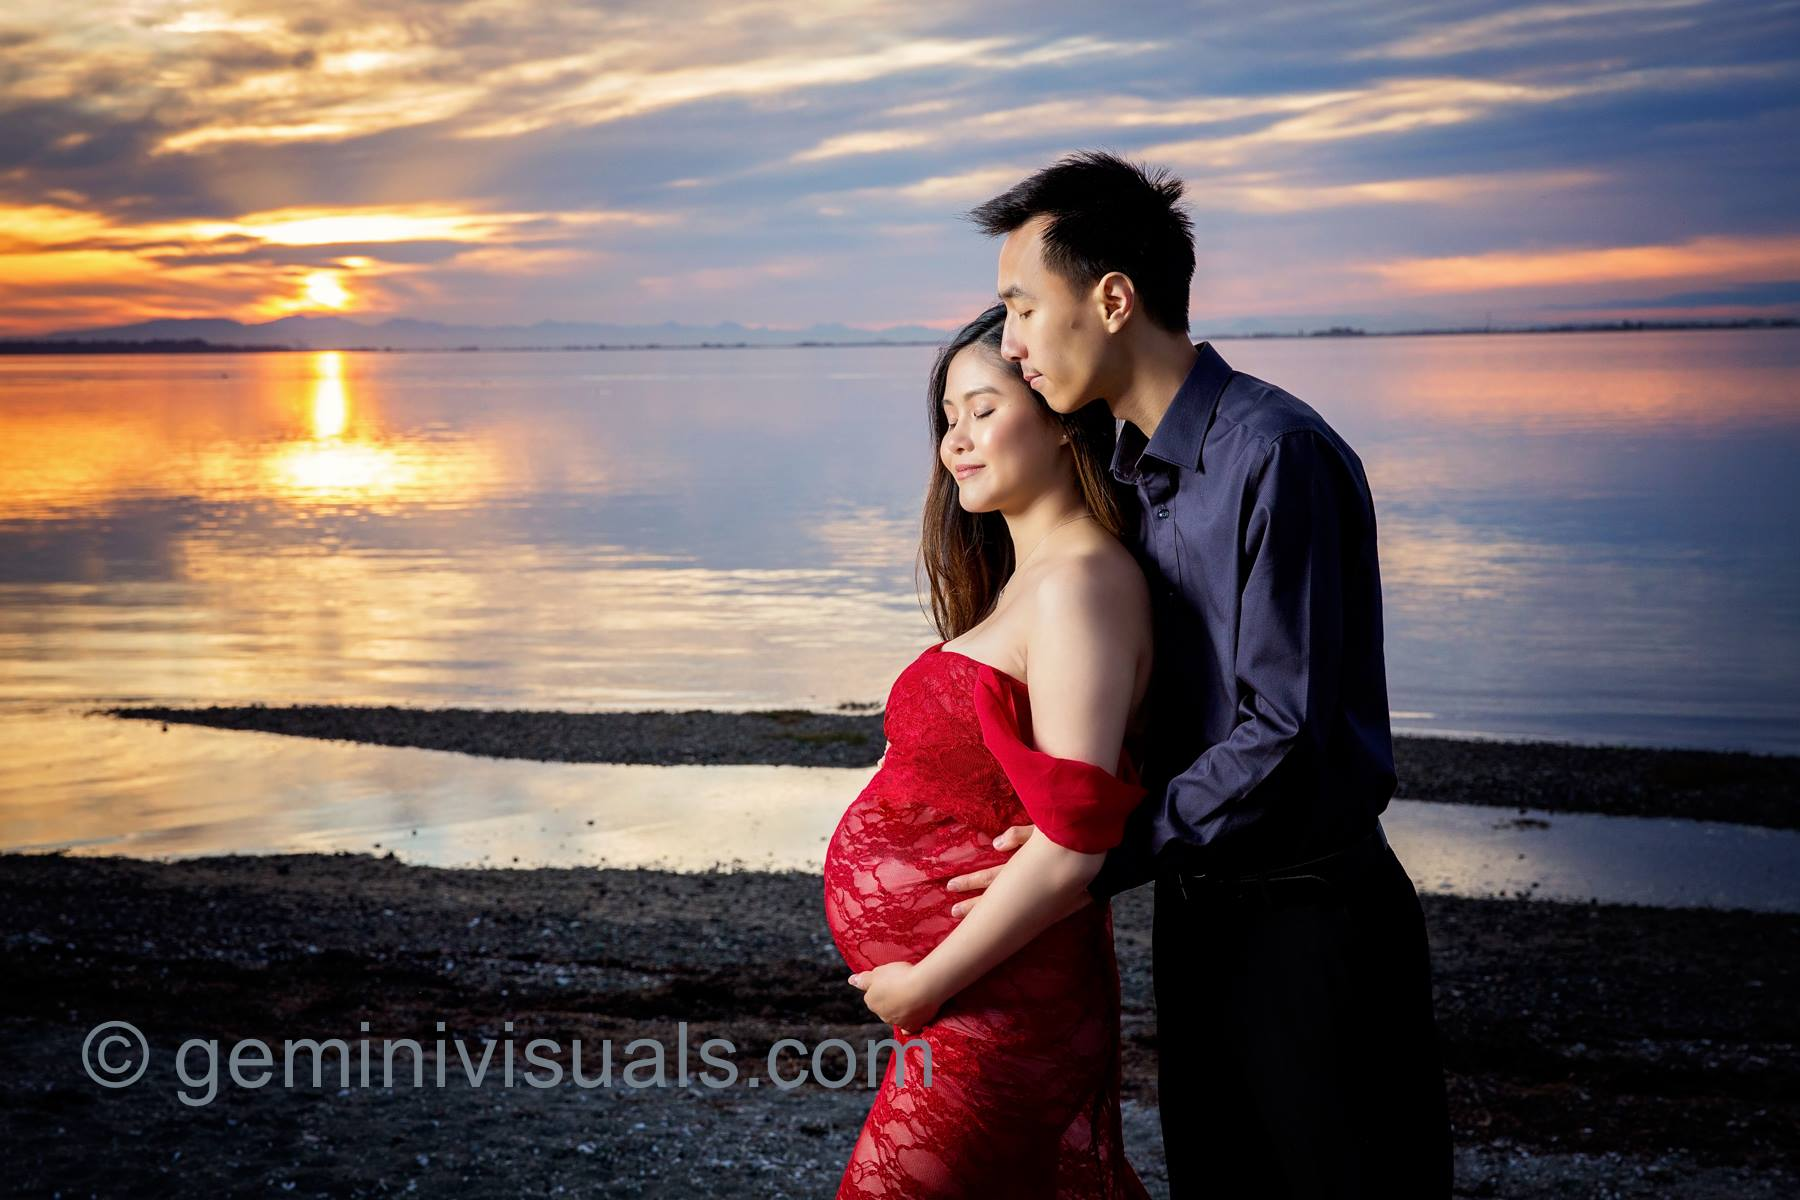 beach photo shoot, gemini visuals photography, surrey bc